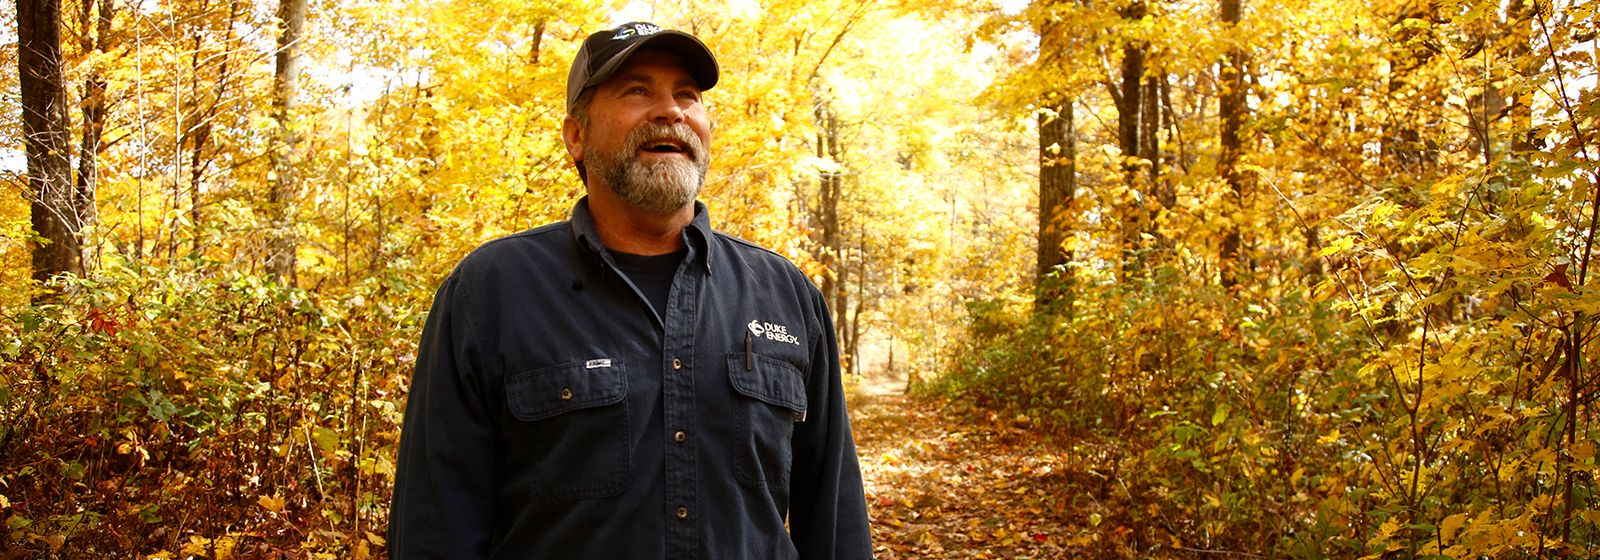 Lineman's idea leads to microgrid in Great Smoky Mountains National Park